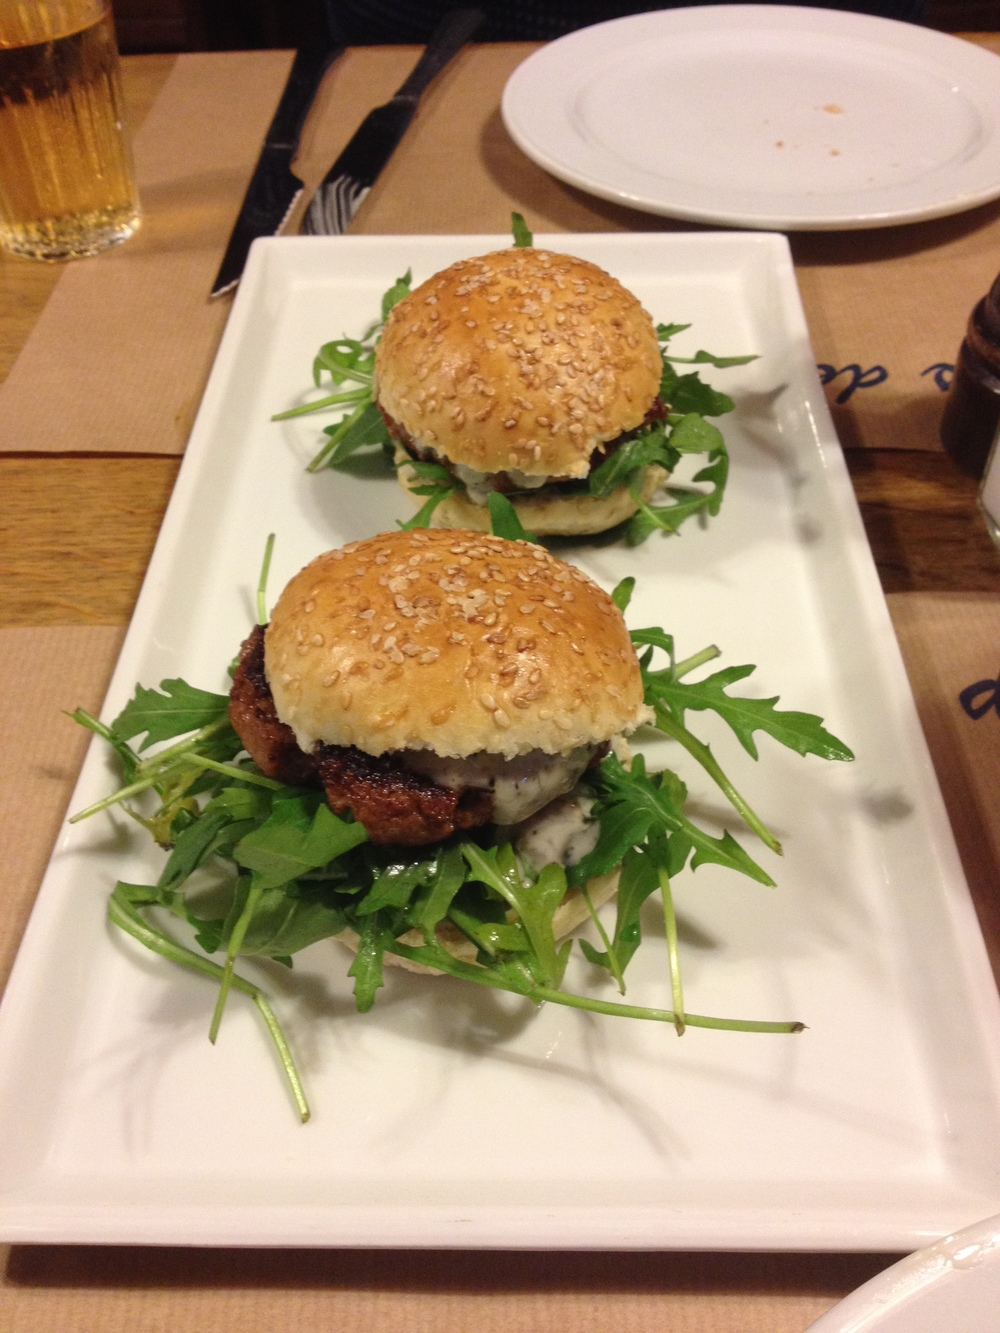 Veal burger starter (photo by Paul Forrester)